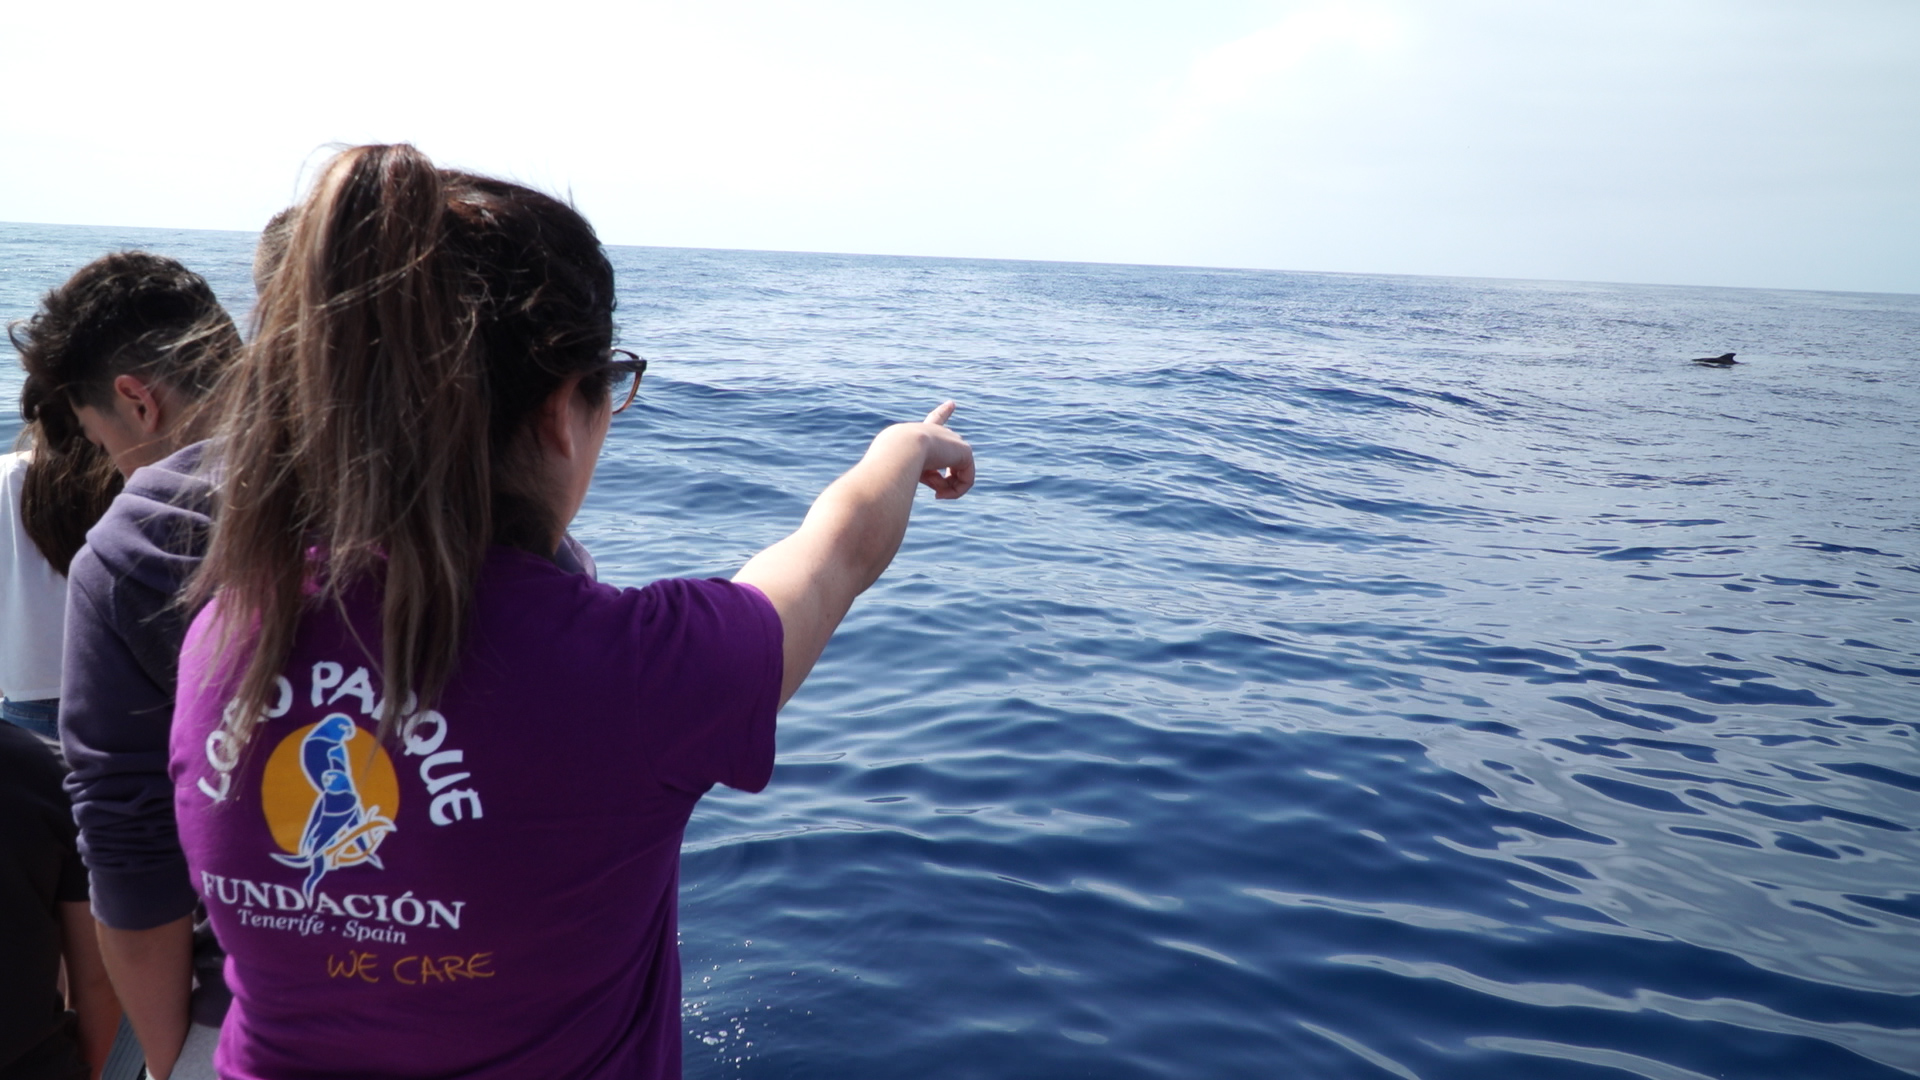 The Loro Parque Foundation promotes a project to study the effects of climate change in the sea